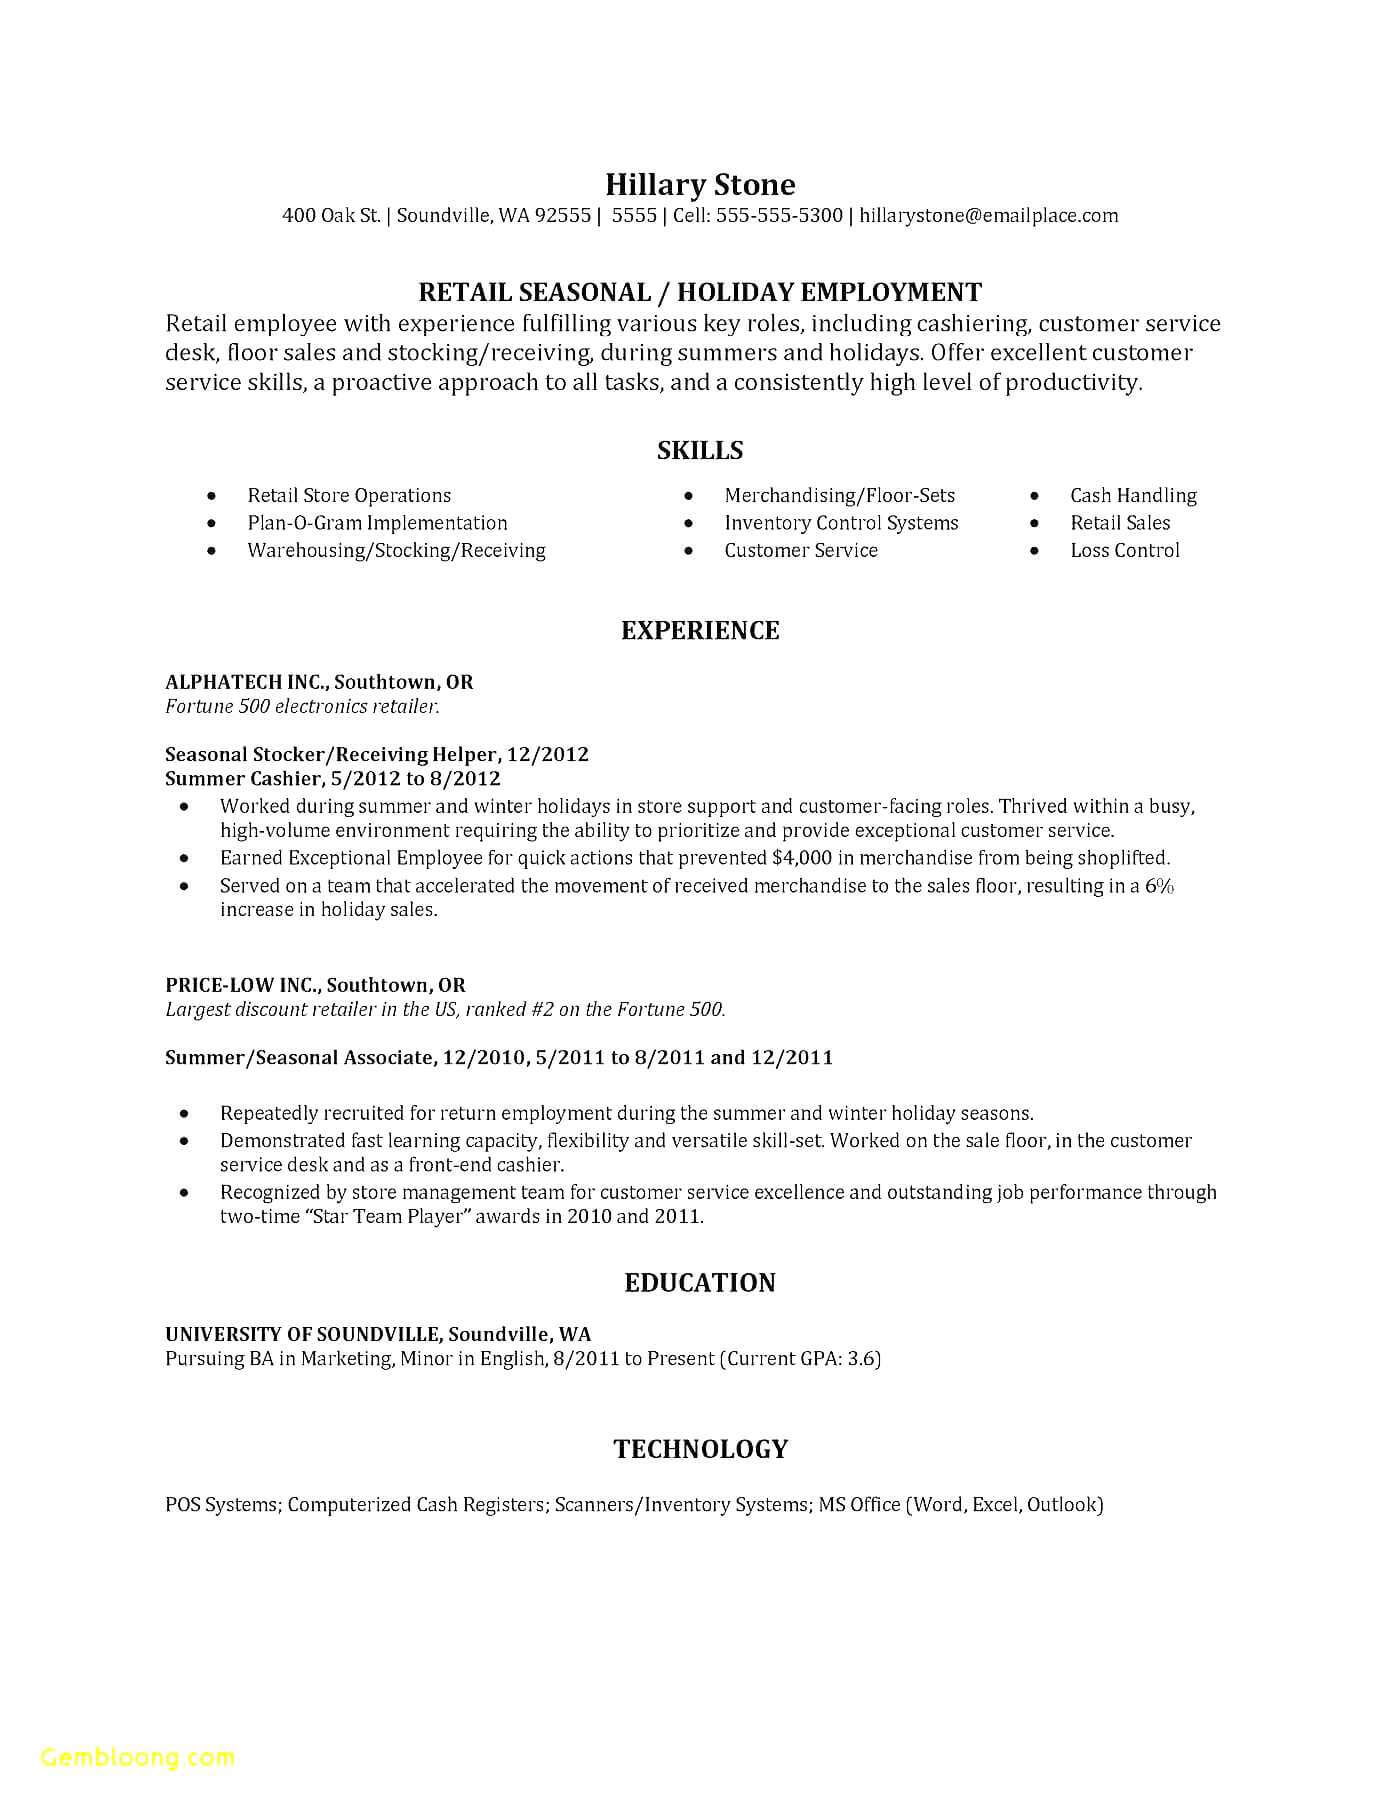 Resume – The Block Party Club with End Of Day Cash Register Report Template